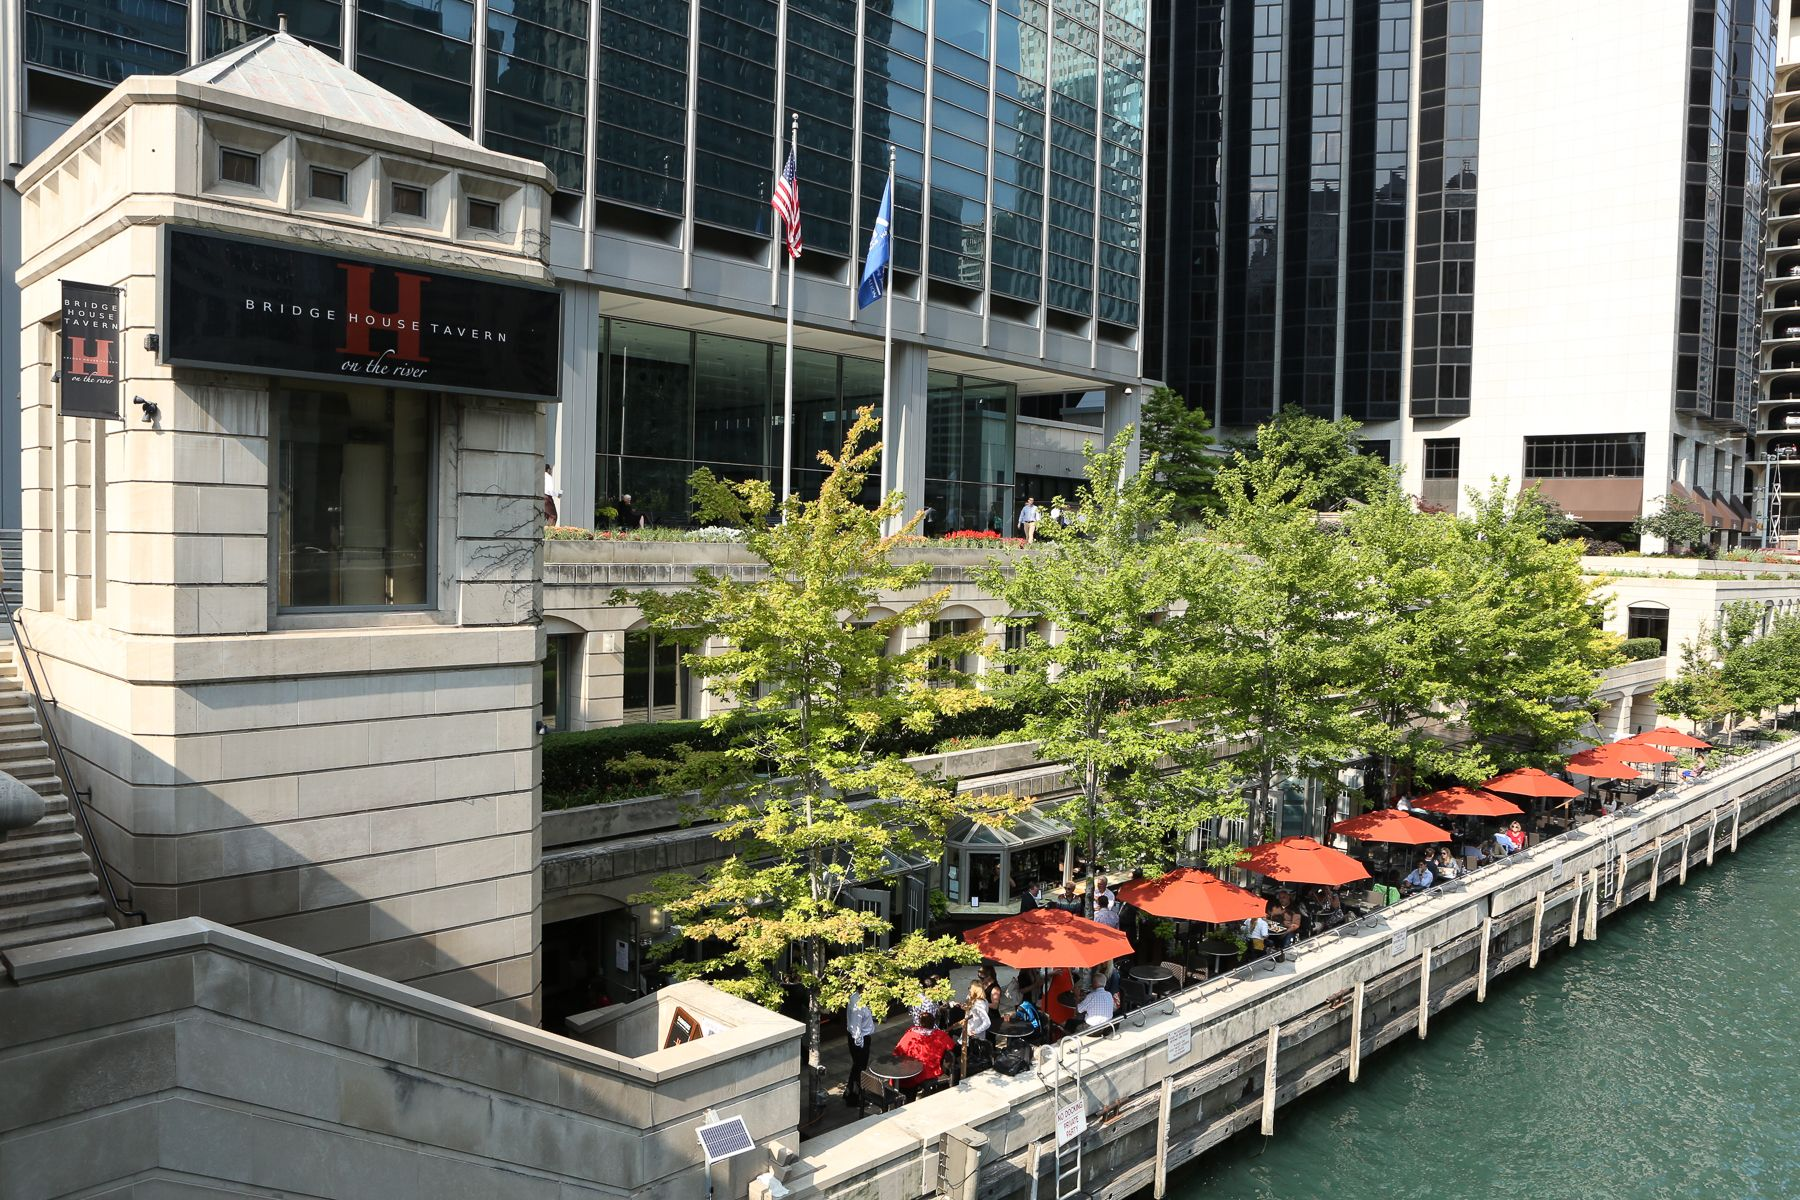 Bridge House Tavern River North Voted One of the Top 100 ...